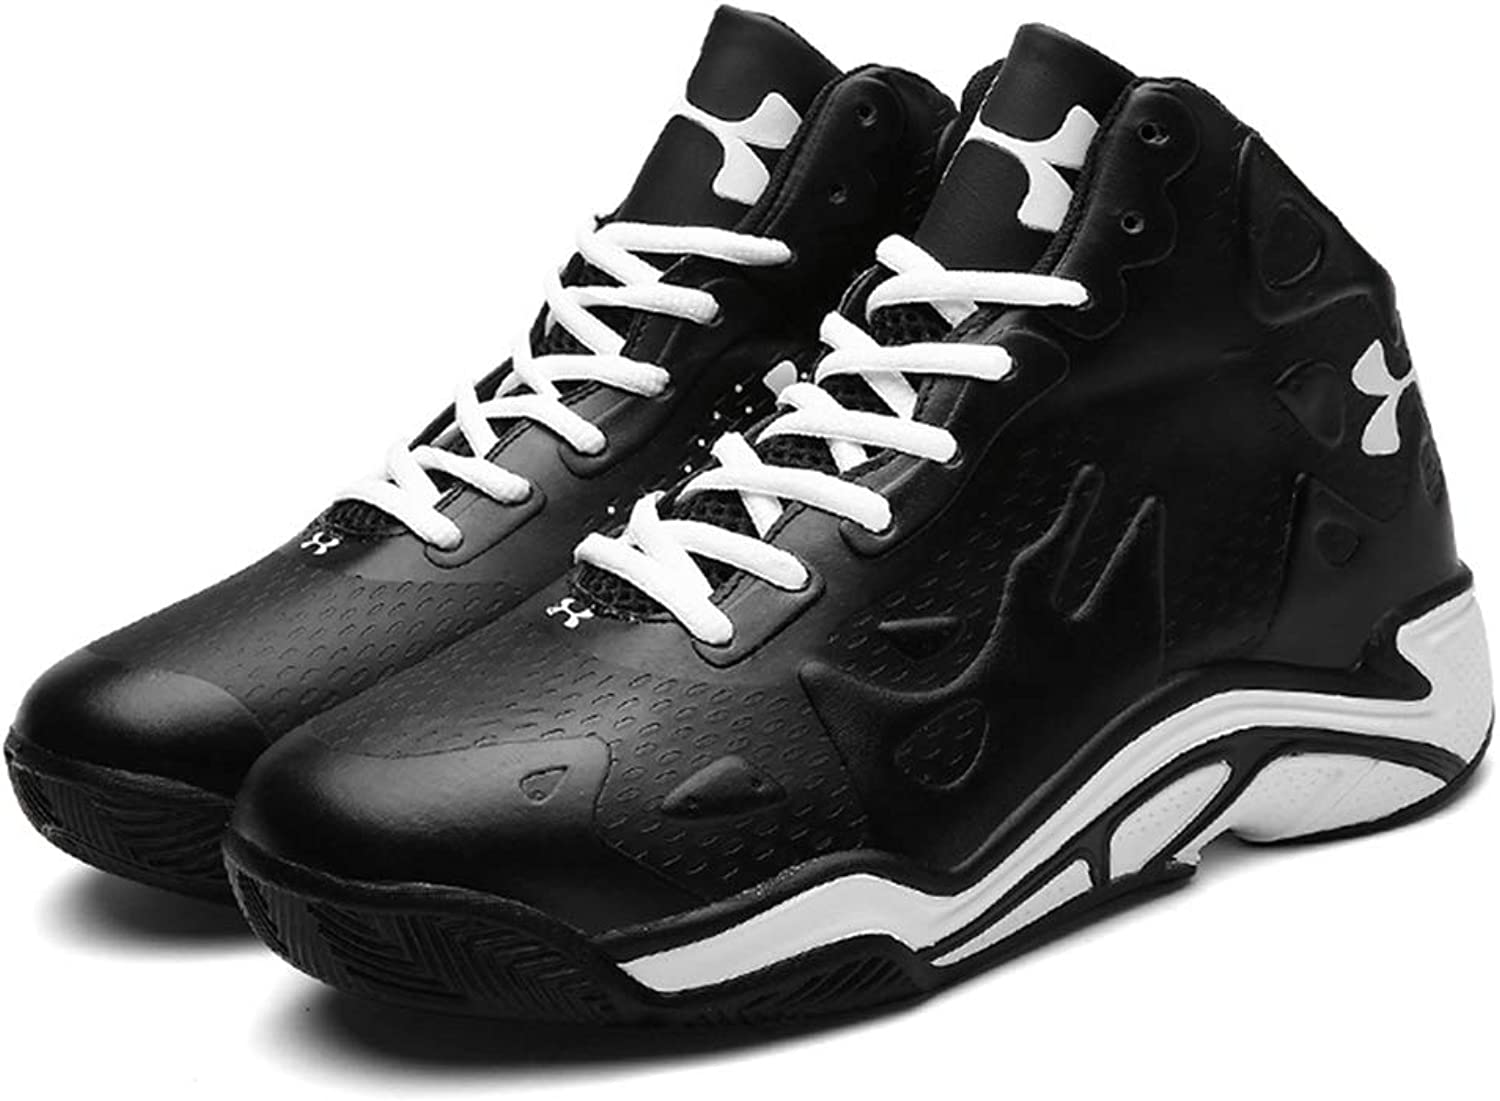 Men's shoes,High-Top Basketball shoes, Spring Fall Artificial PU Sneakers,Slip Resistant Running shoes, Outdoor Exercise Sneakers